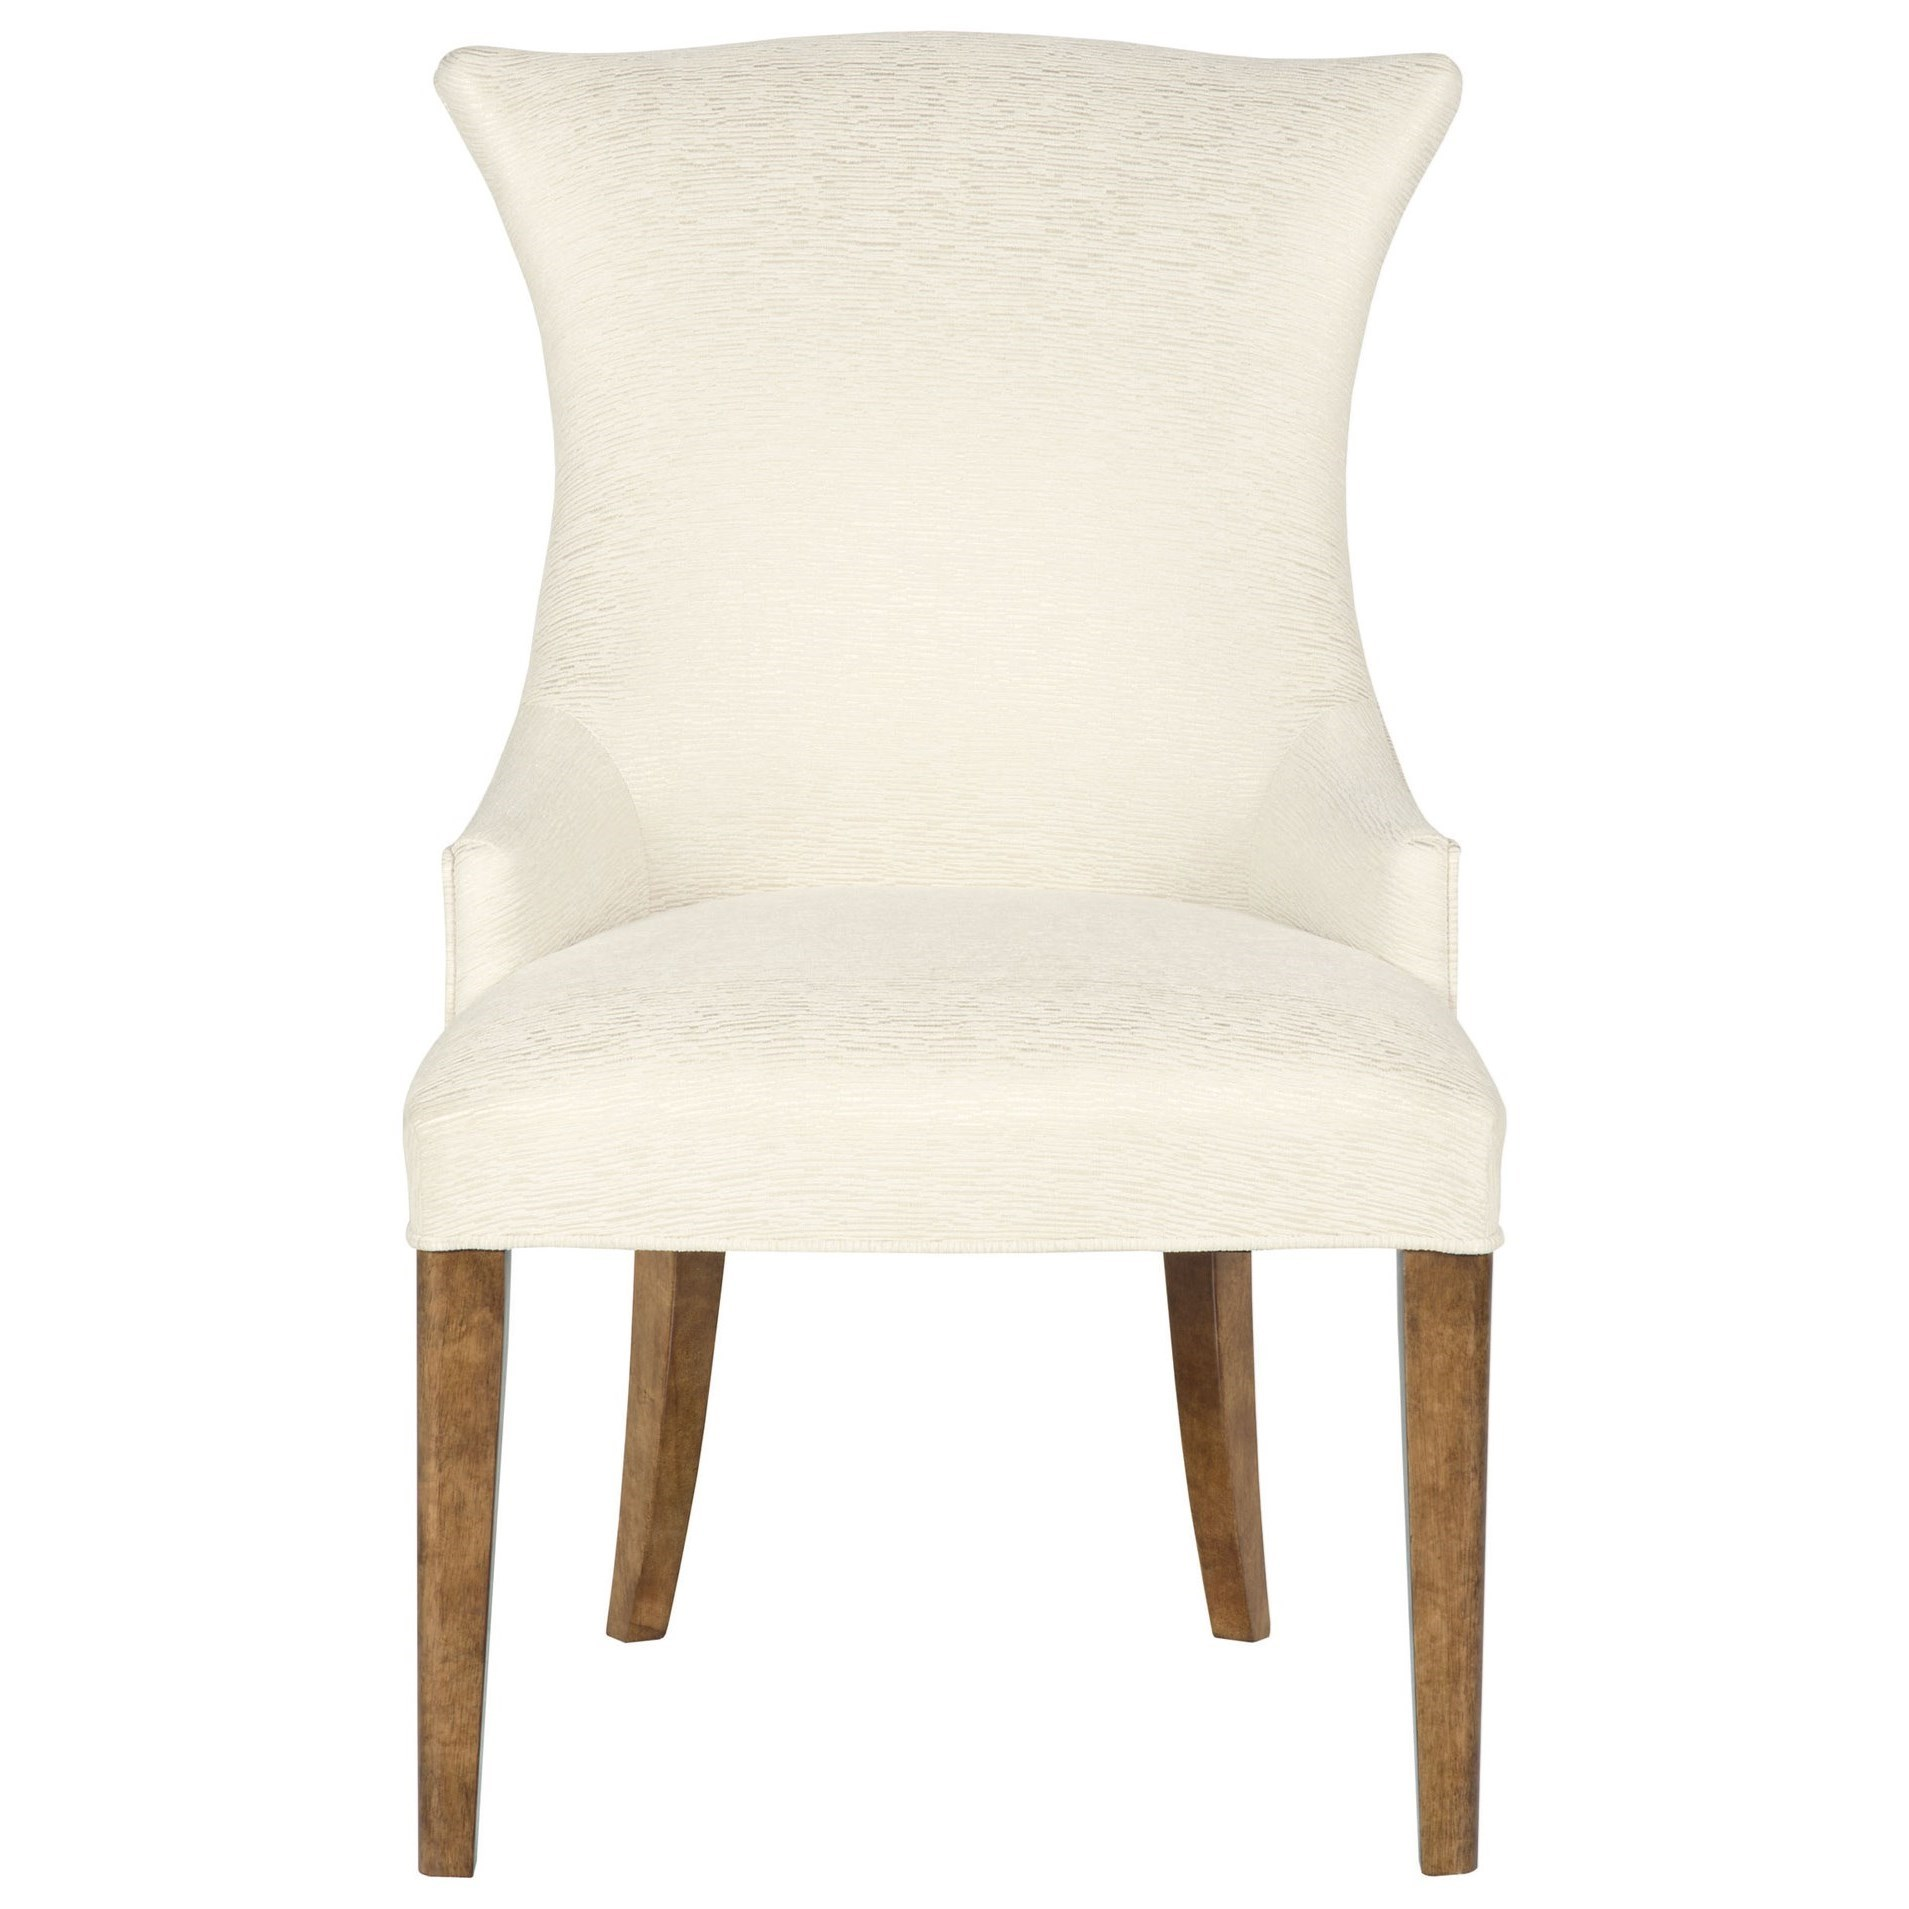 Bernhardt Soho Luxe Upholstered Arm Chair - Item Number: 368-546